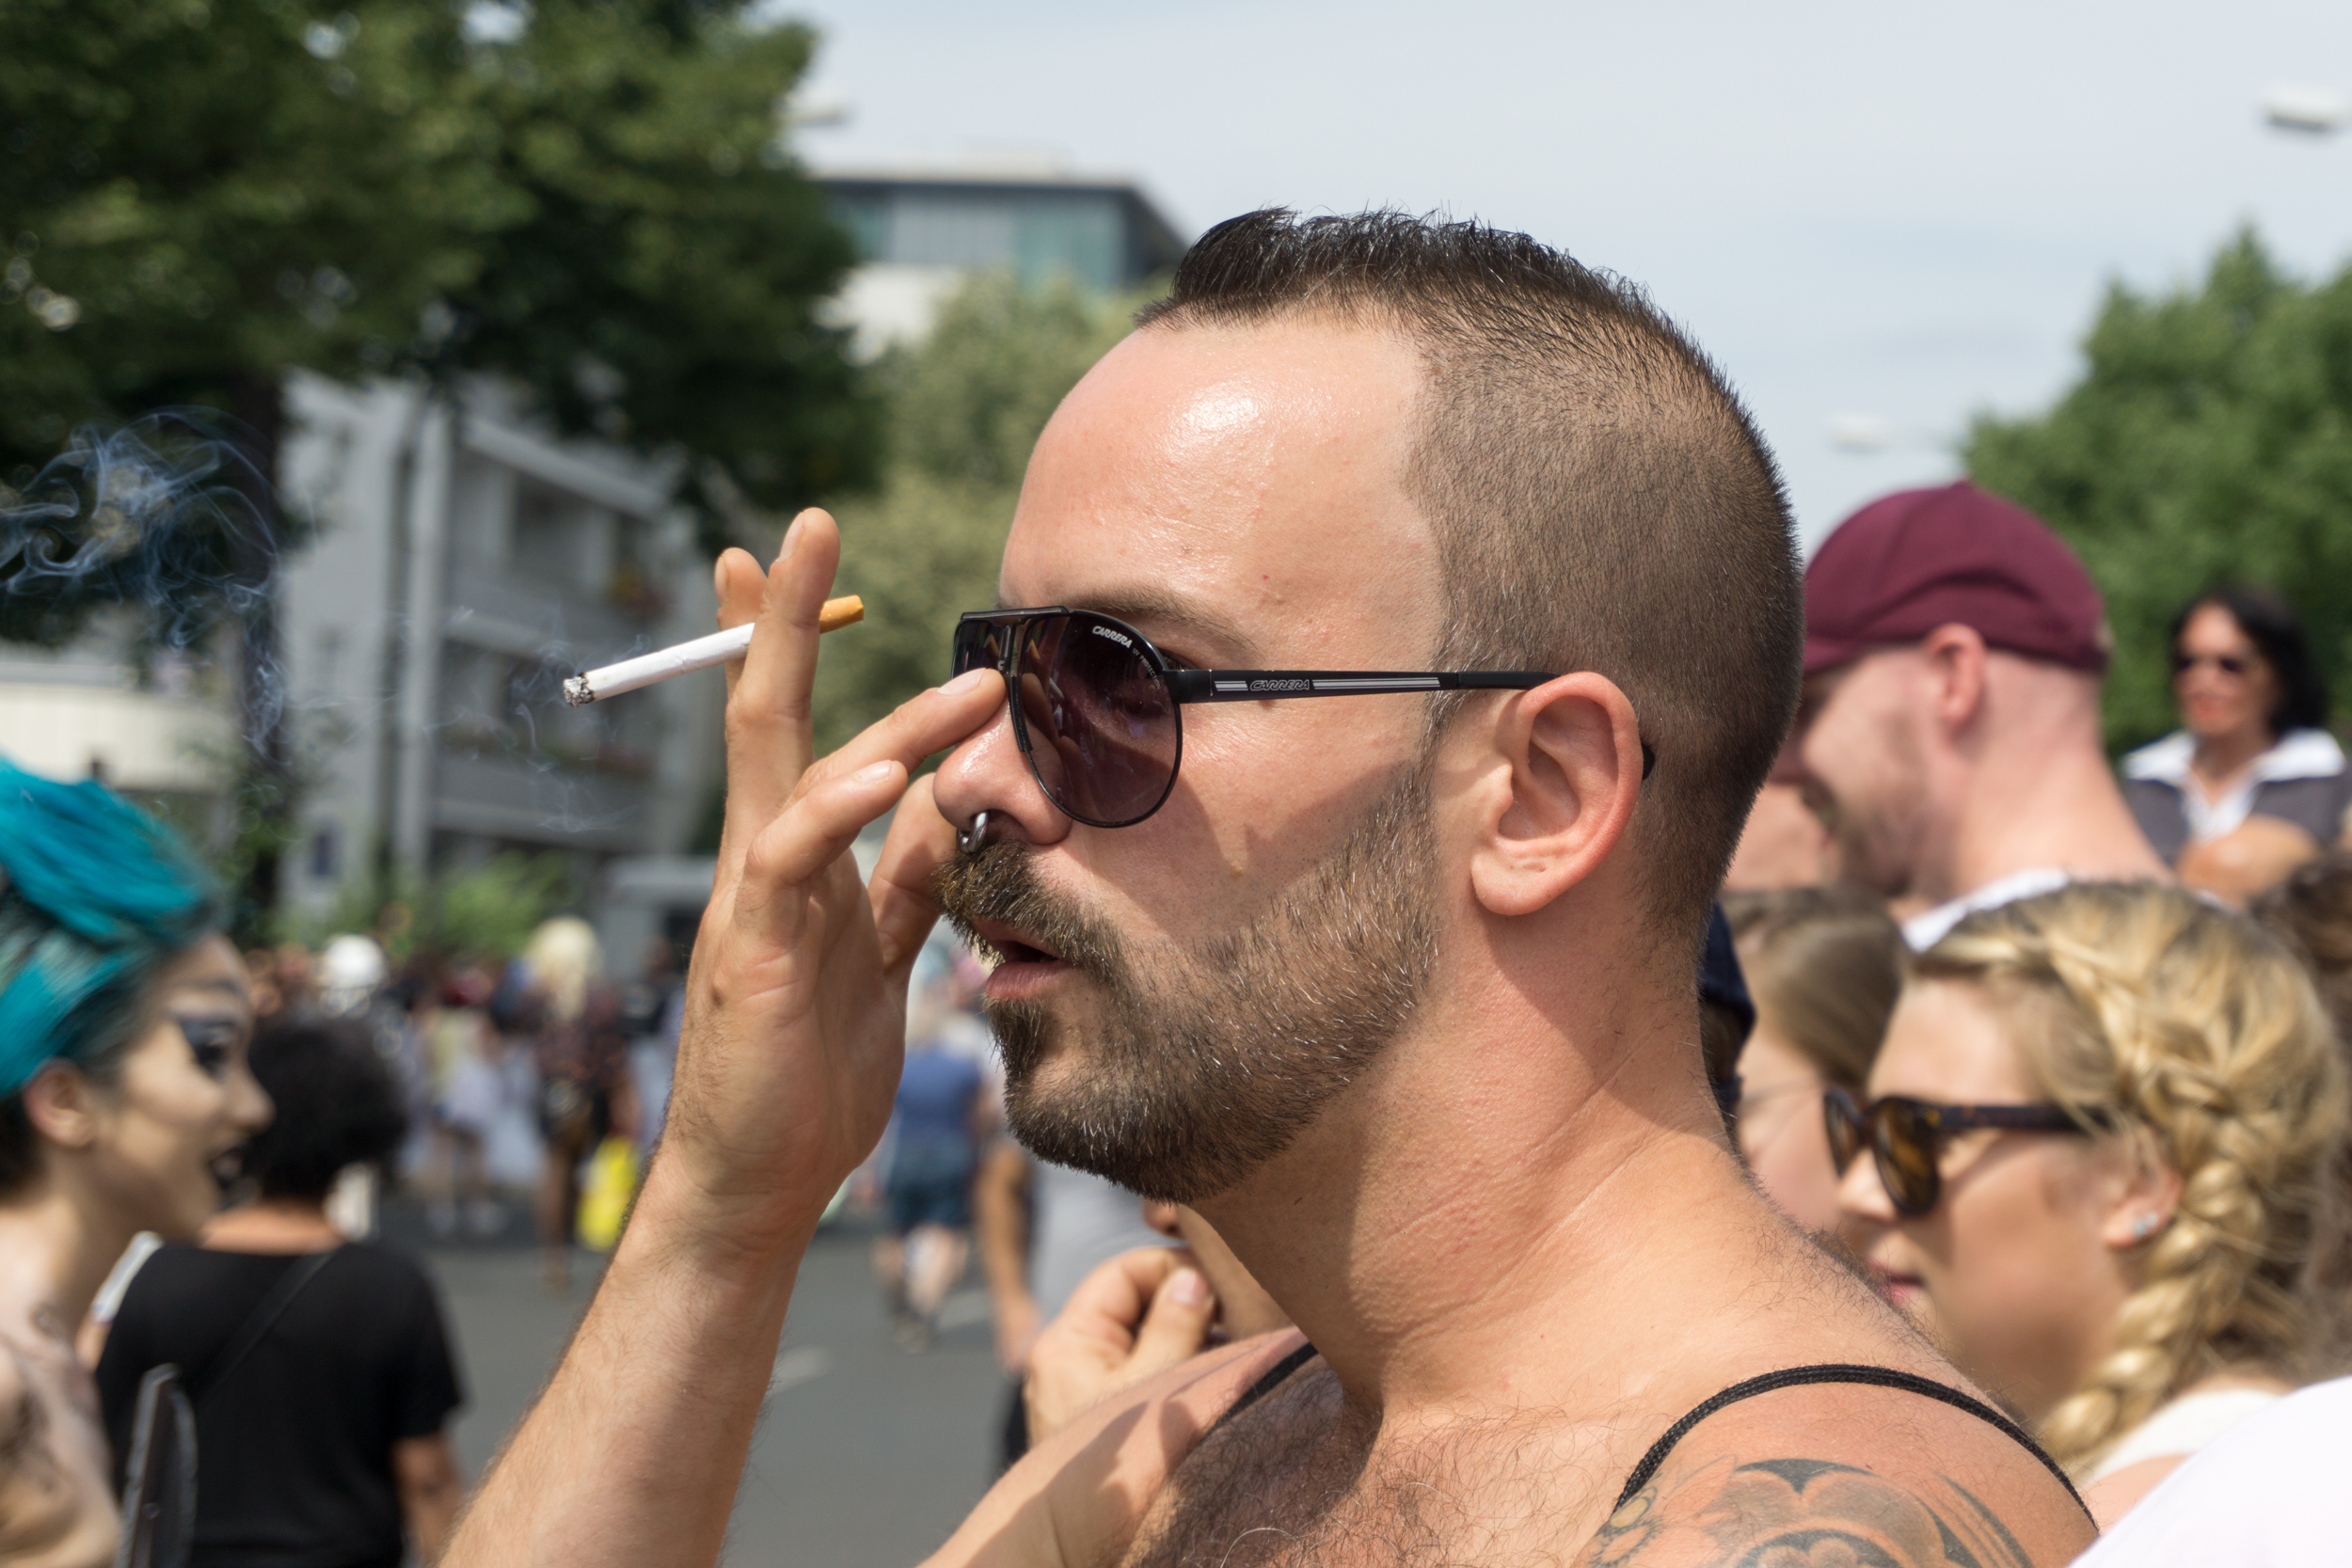 In_Pictures-Berlin_Pride-11